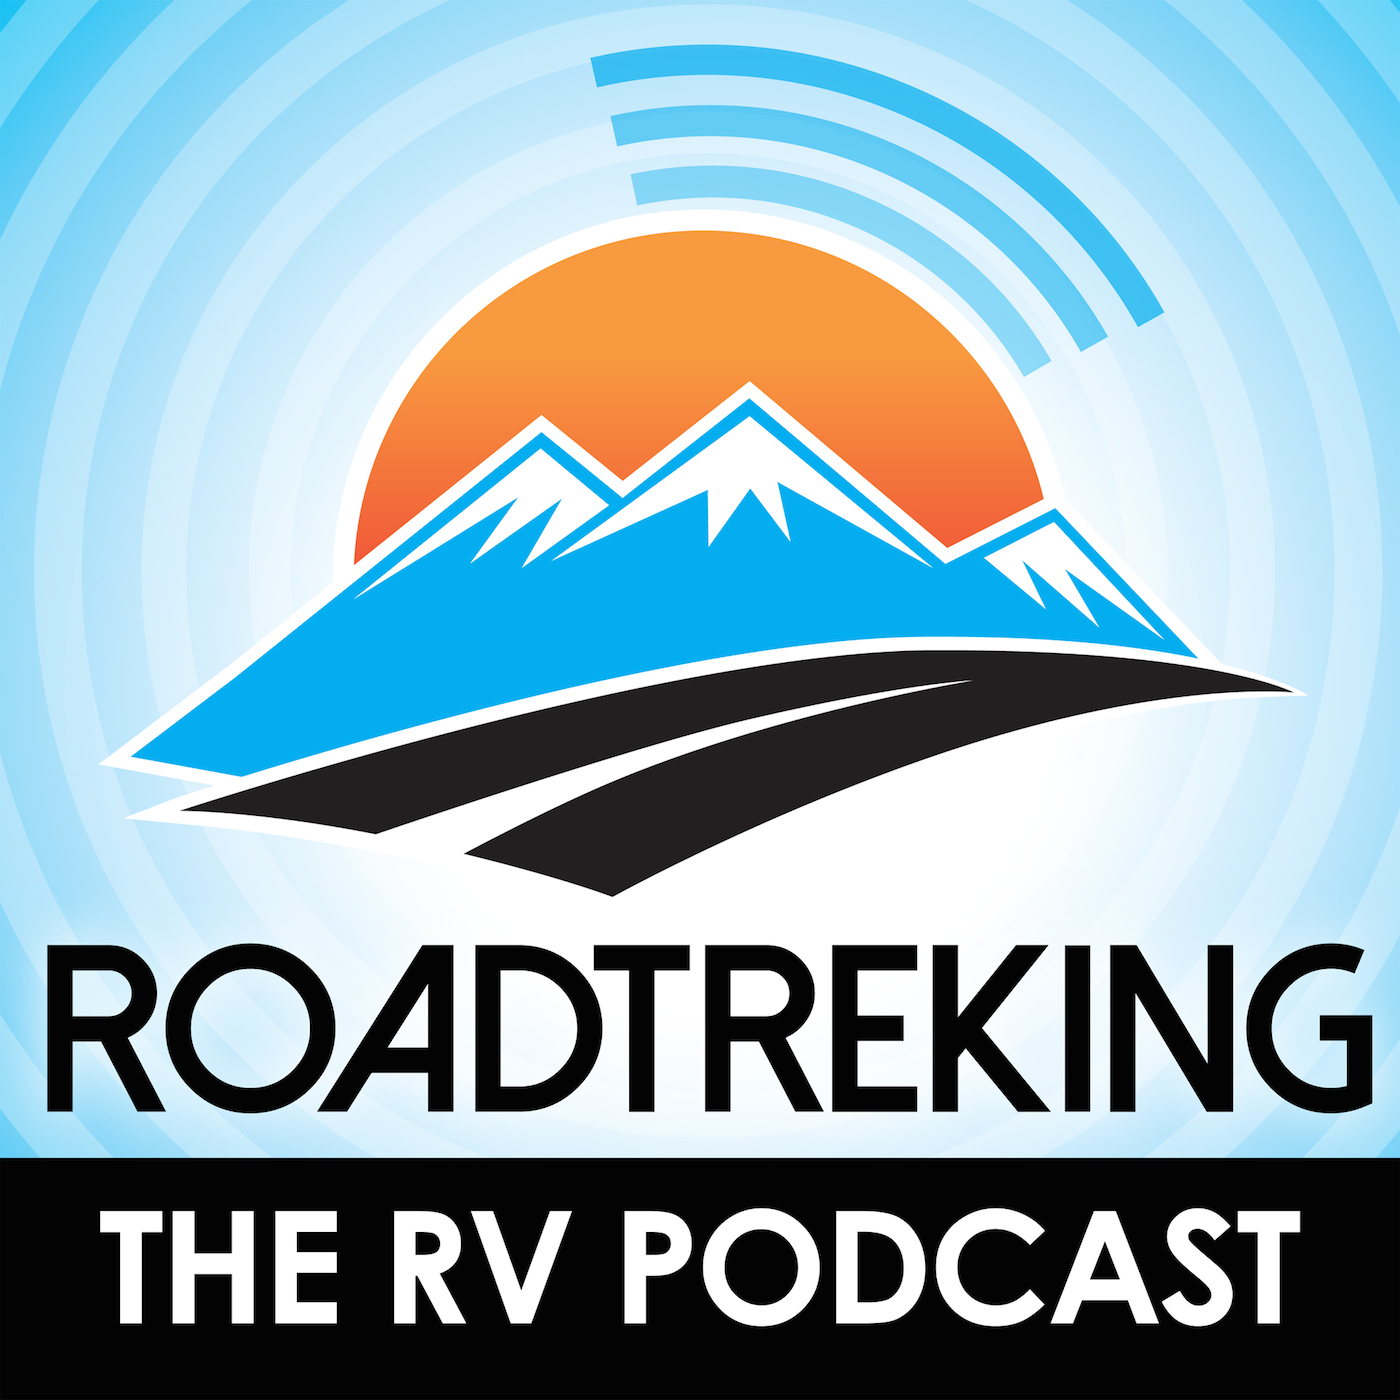 Episode 118: Get Ready for Self-Driving RVs